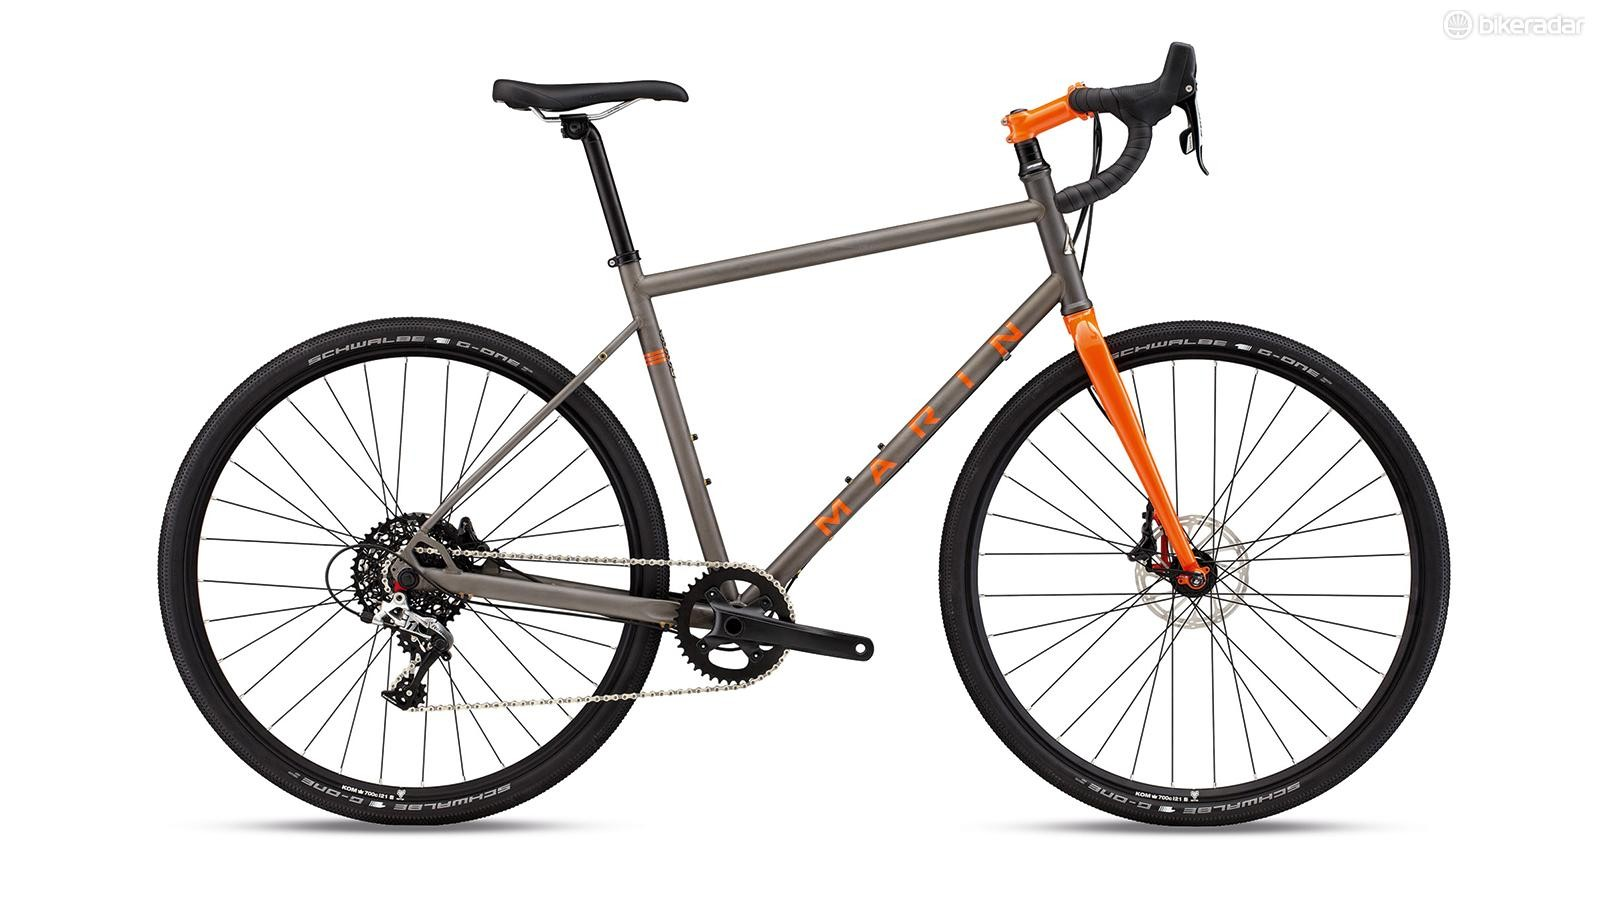 Marin's Four Corners Elite takes traditional steel and bends it into a bang-up-to-date form